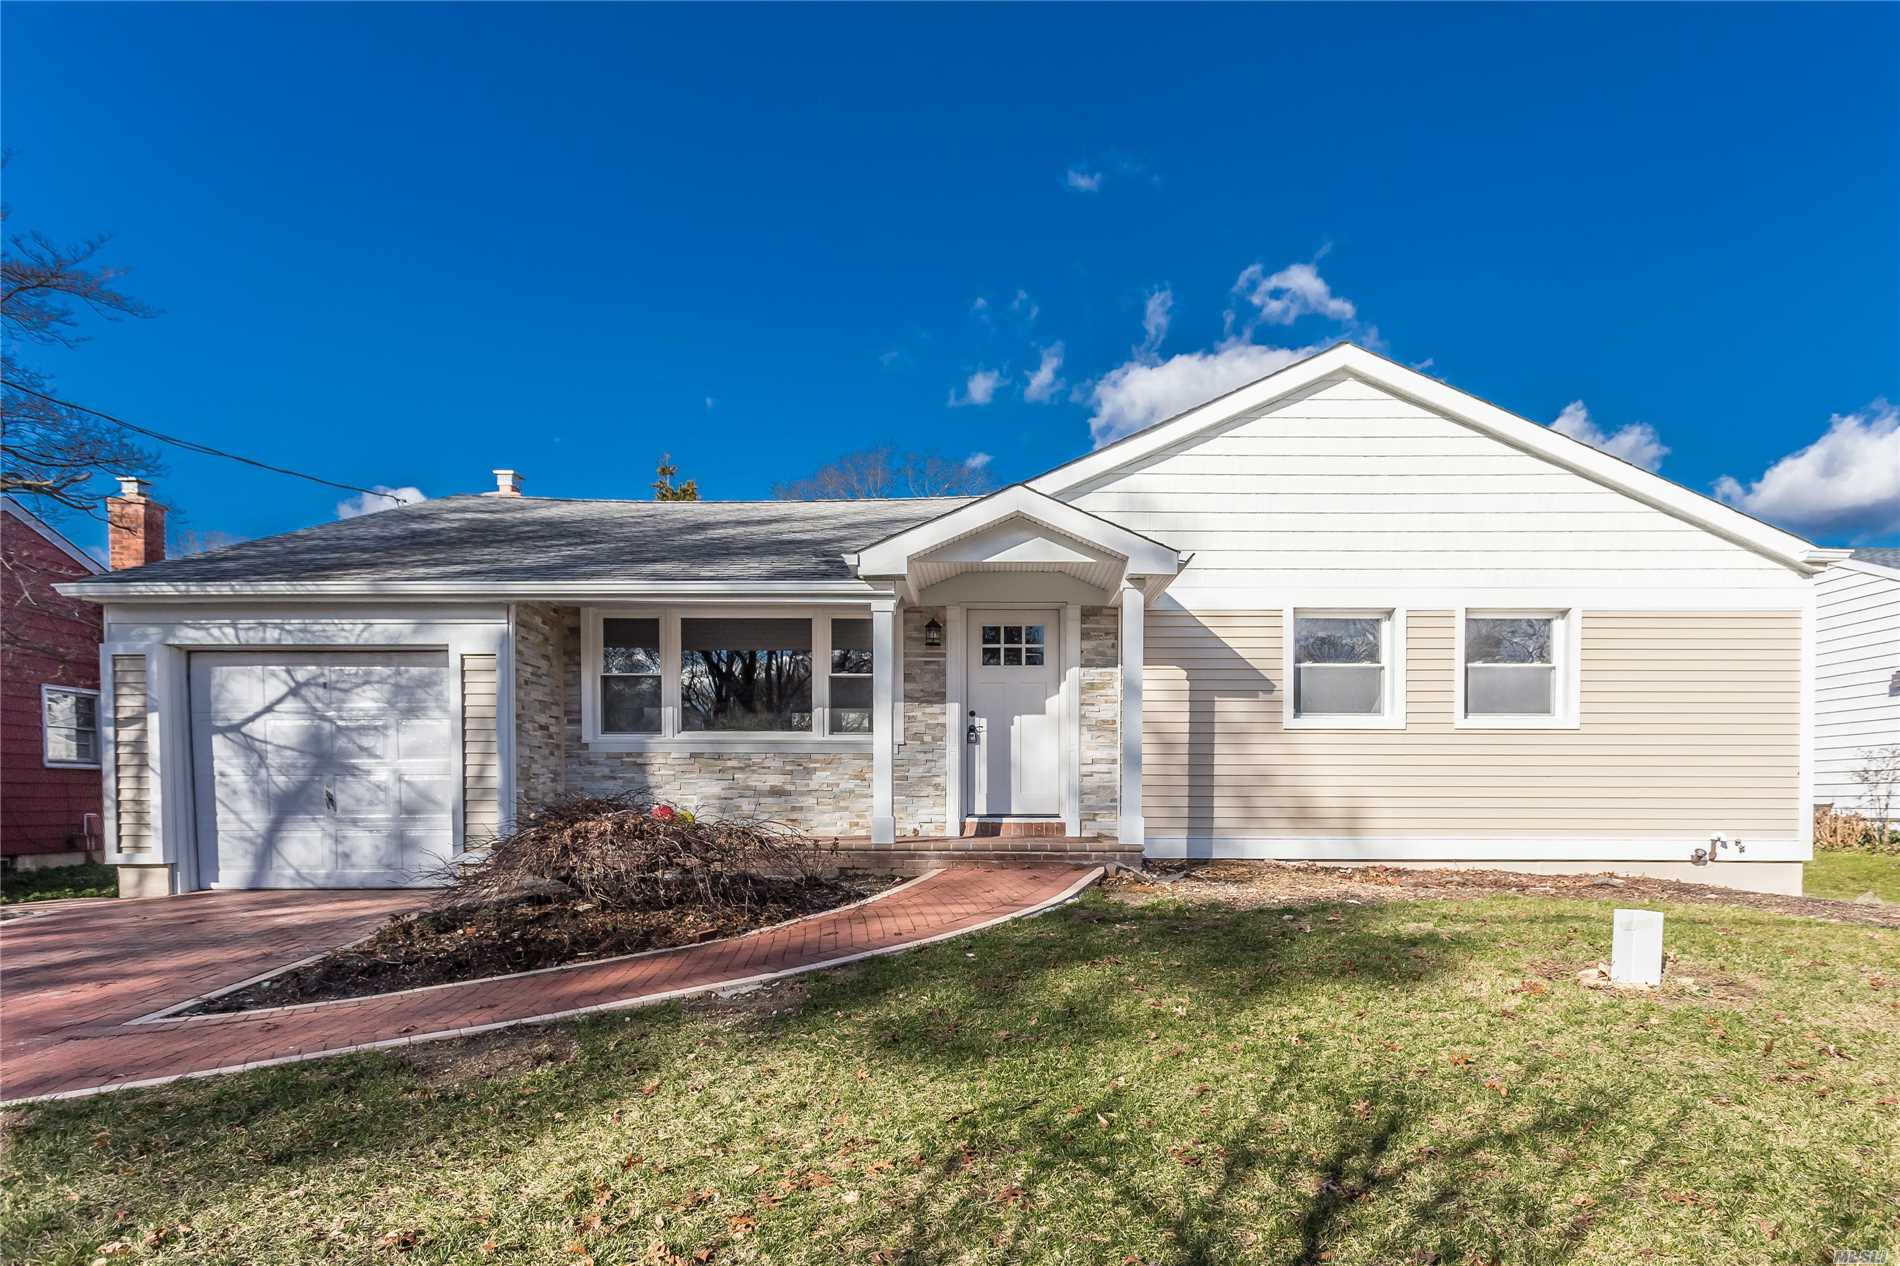 Completely Renovated North Shore Schools Ranch -- Granite Kitchen -- New Baths -- Wood Floors-- Vinyl Siding -- Finished Basement -- Move Right In                                                                                                                       *******************Motivated Owner******************